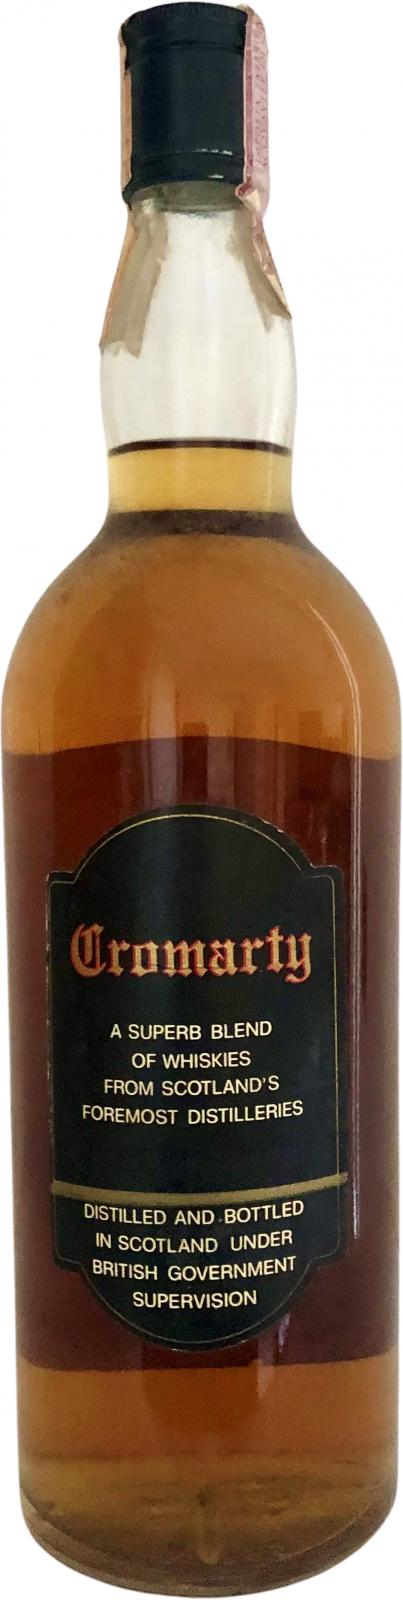 Cromarty Finest Old Scotch Whisky